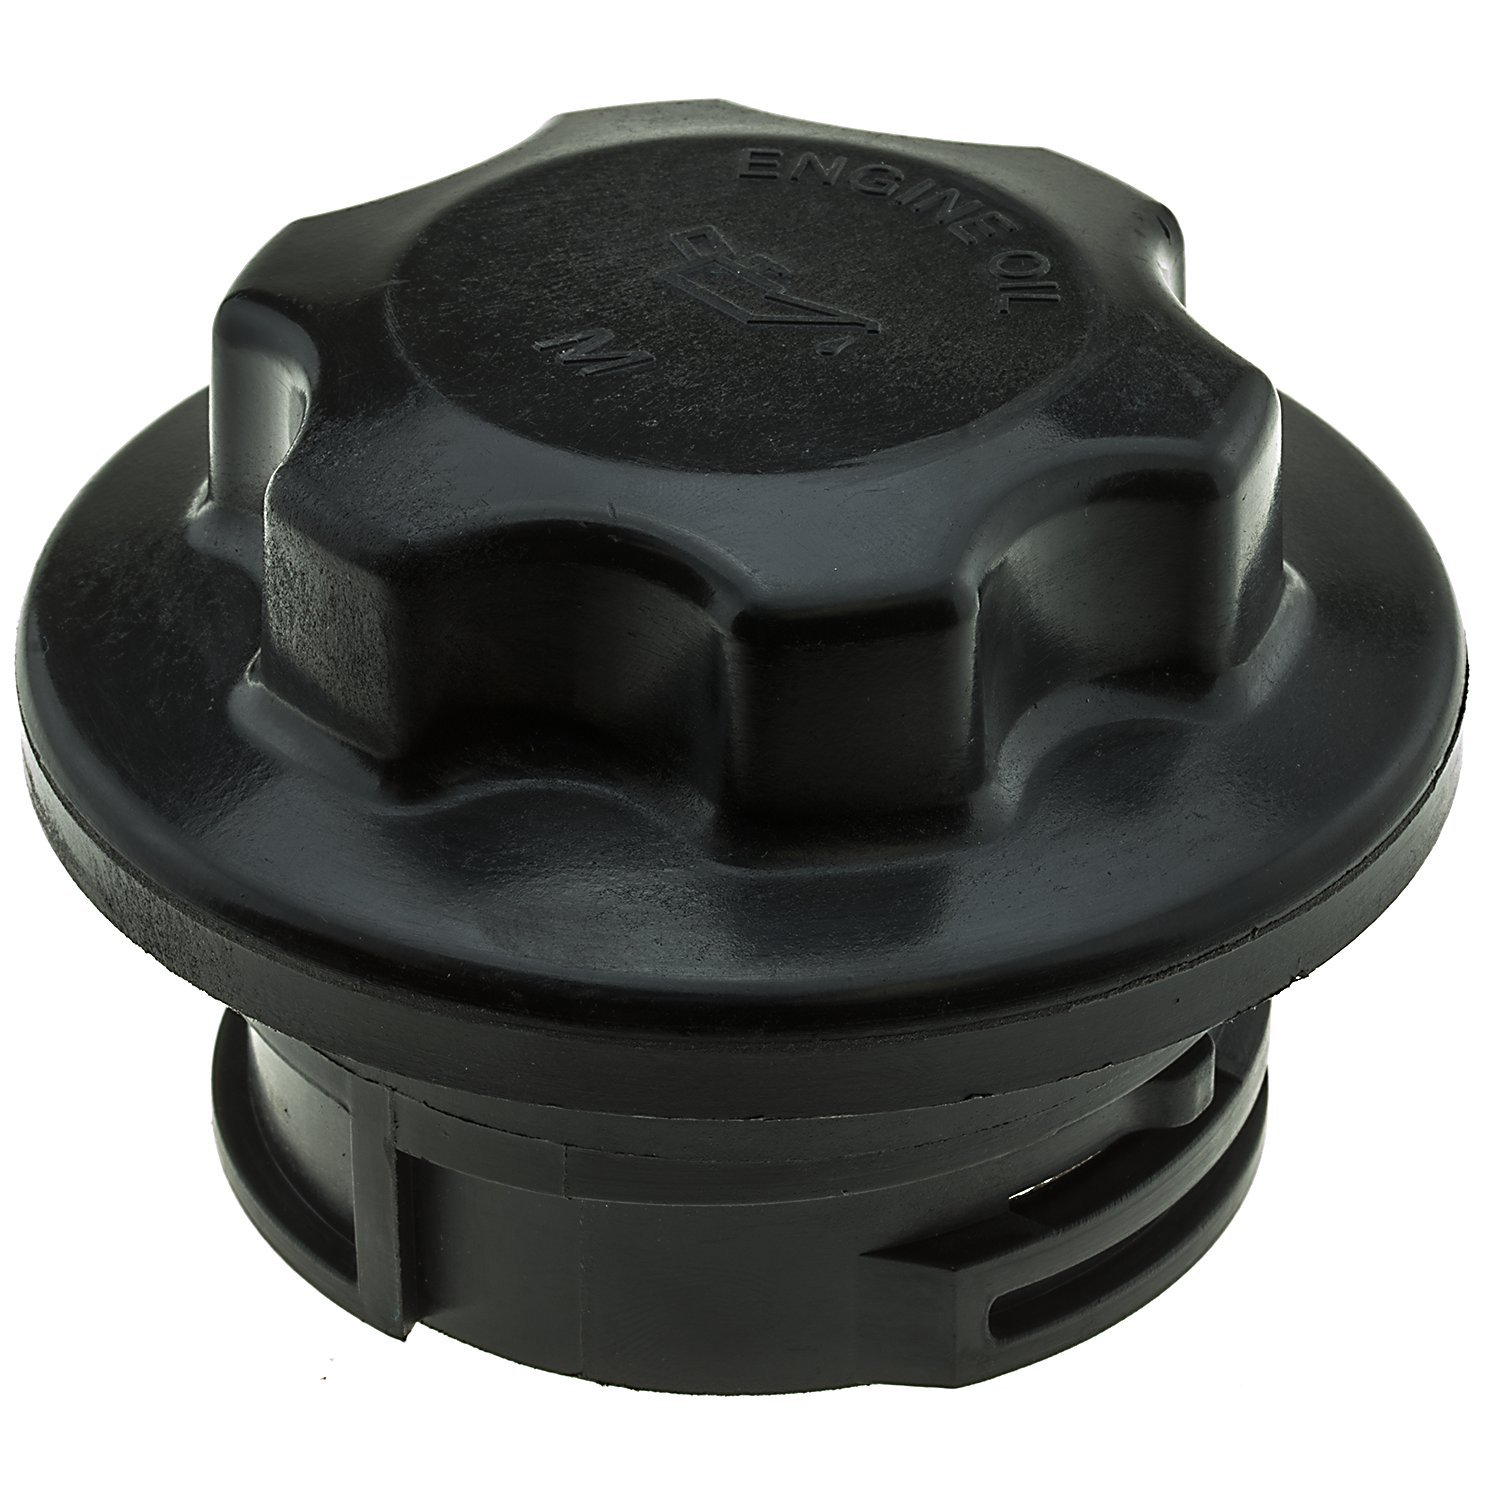 Motorad MO-148 Oil Filler Cap